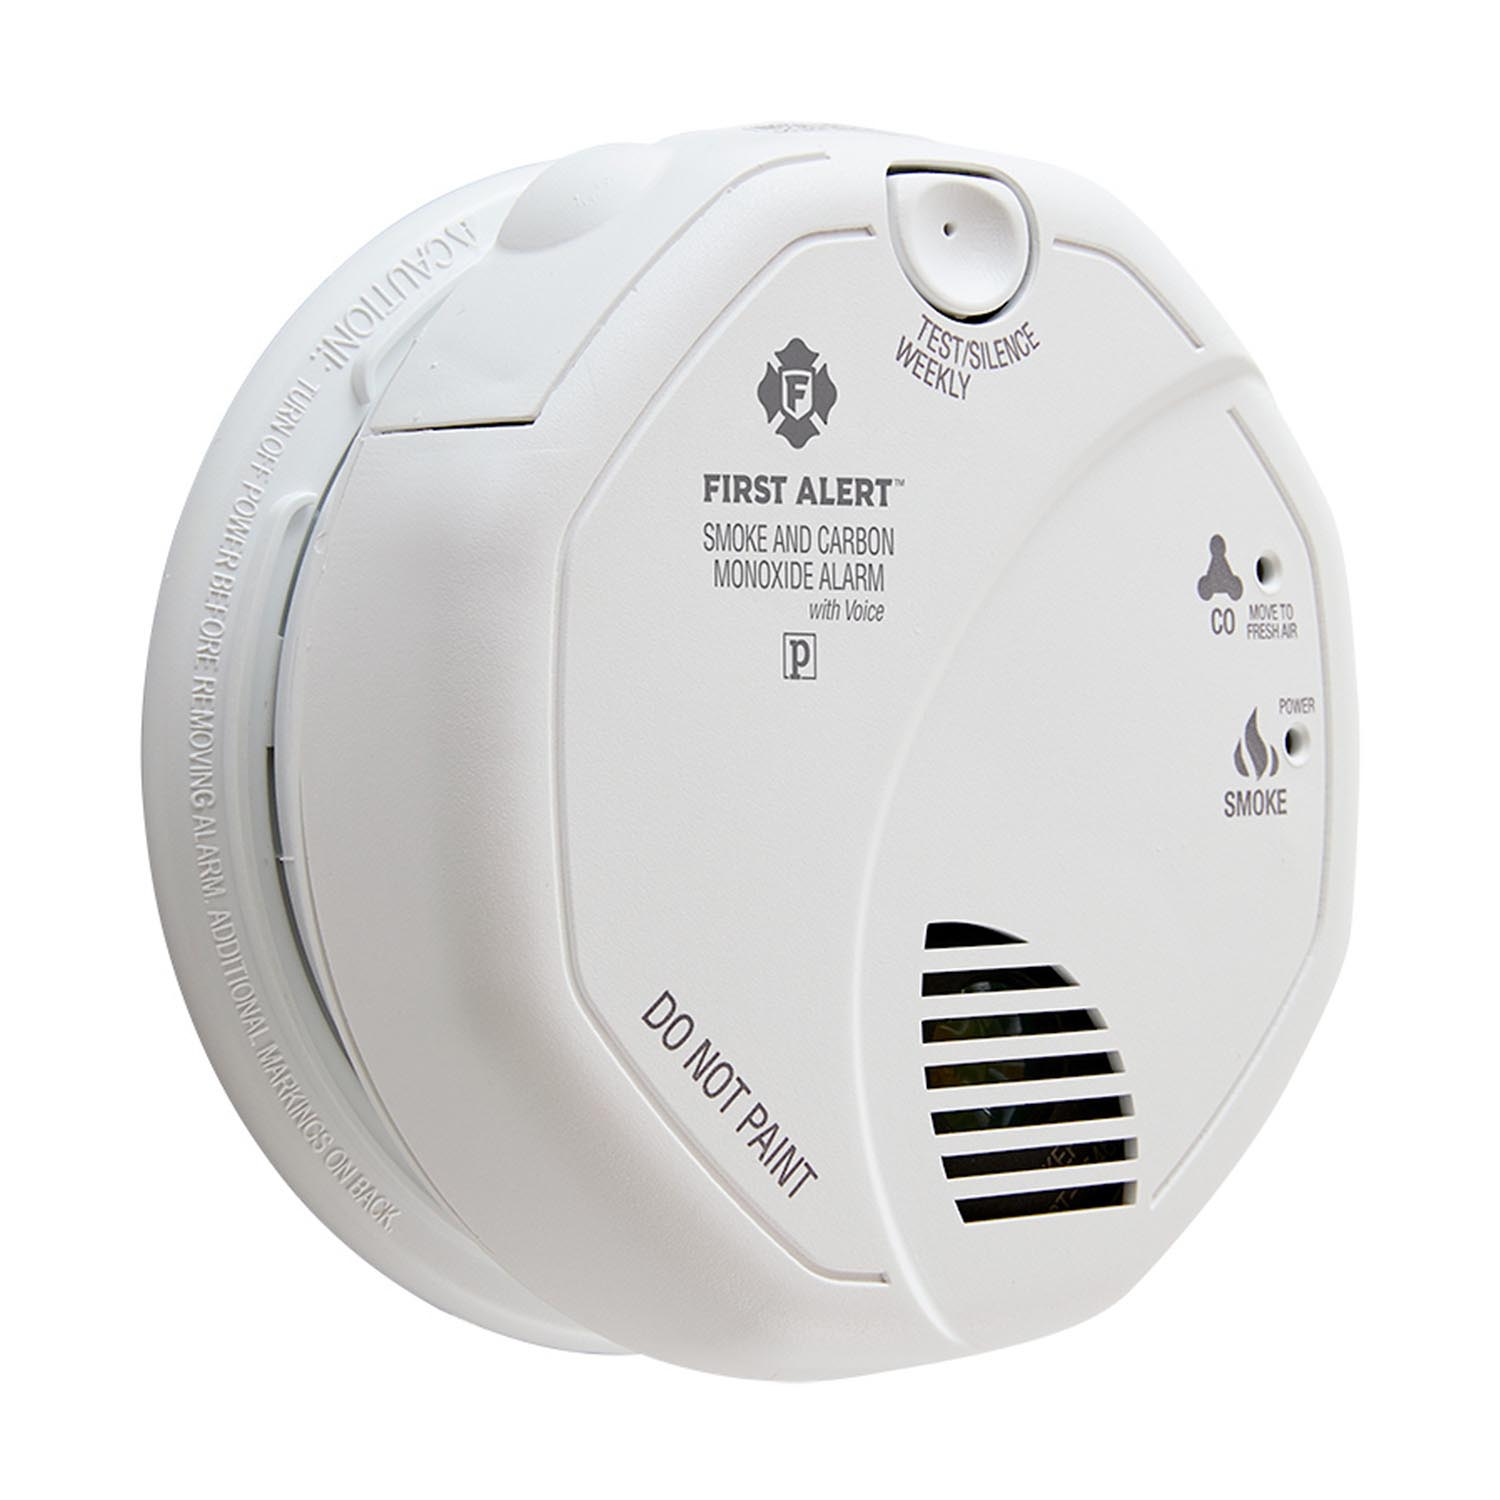 First Alert Hardwired Photoelectric Smoke and Carbon Monoxide Alarm with Voice & Location Feature - SC7010BV